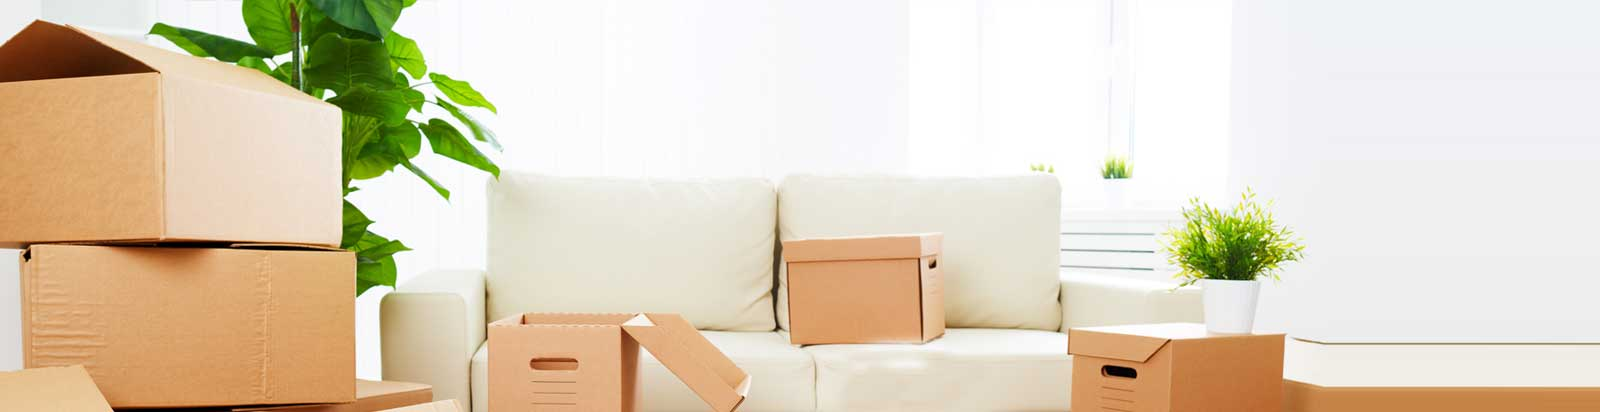 Great Villa Packers and Movers - Delhi Image